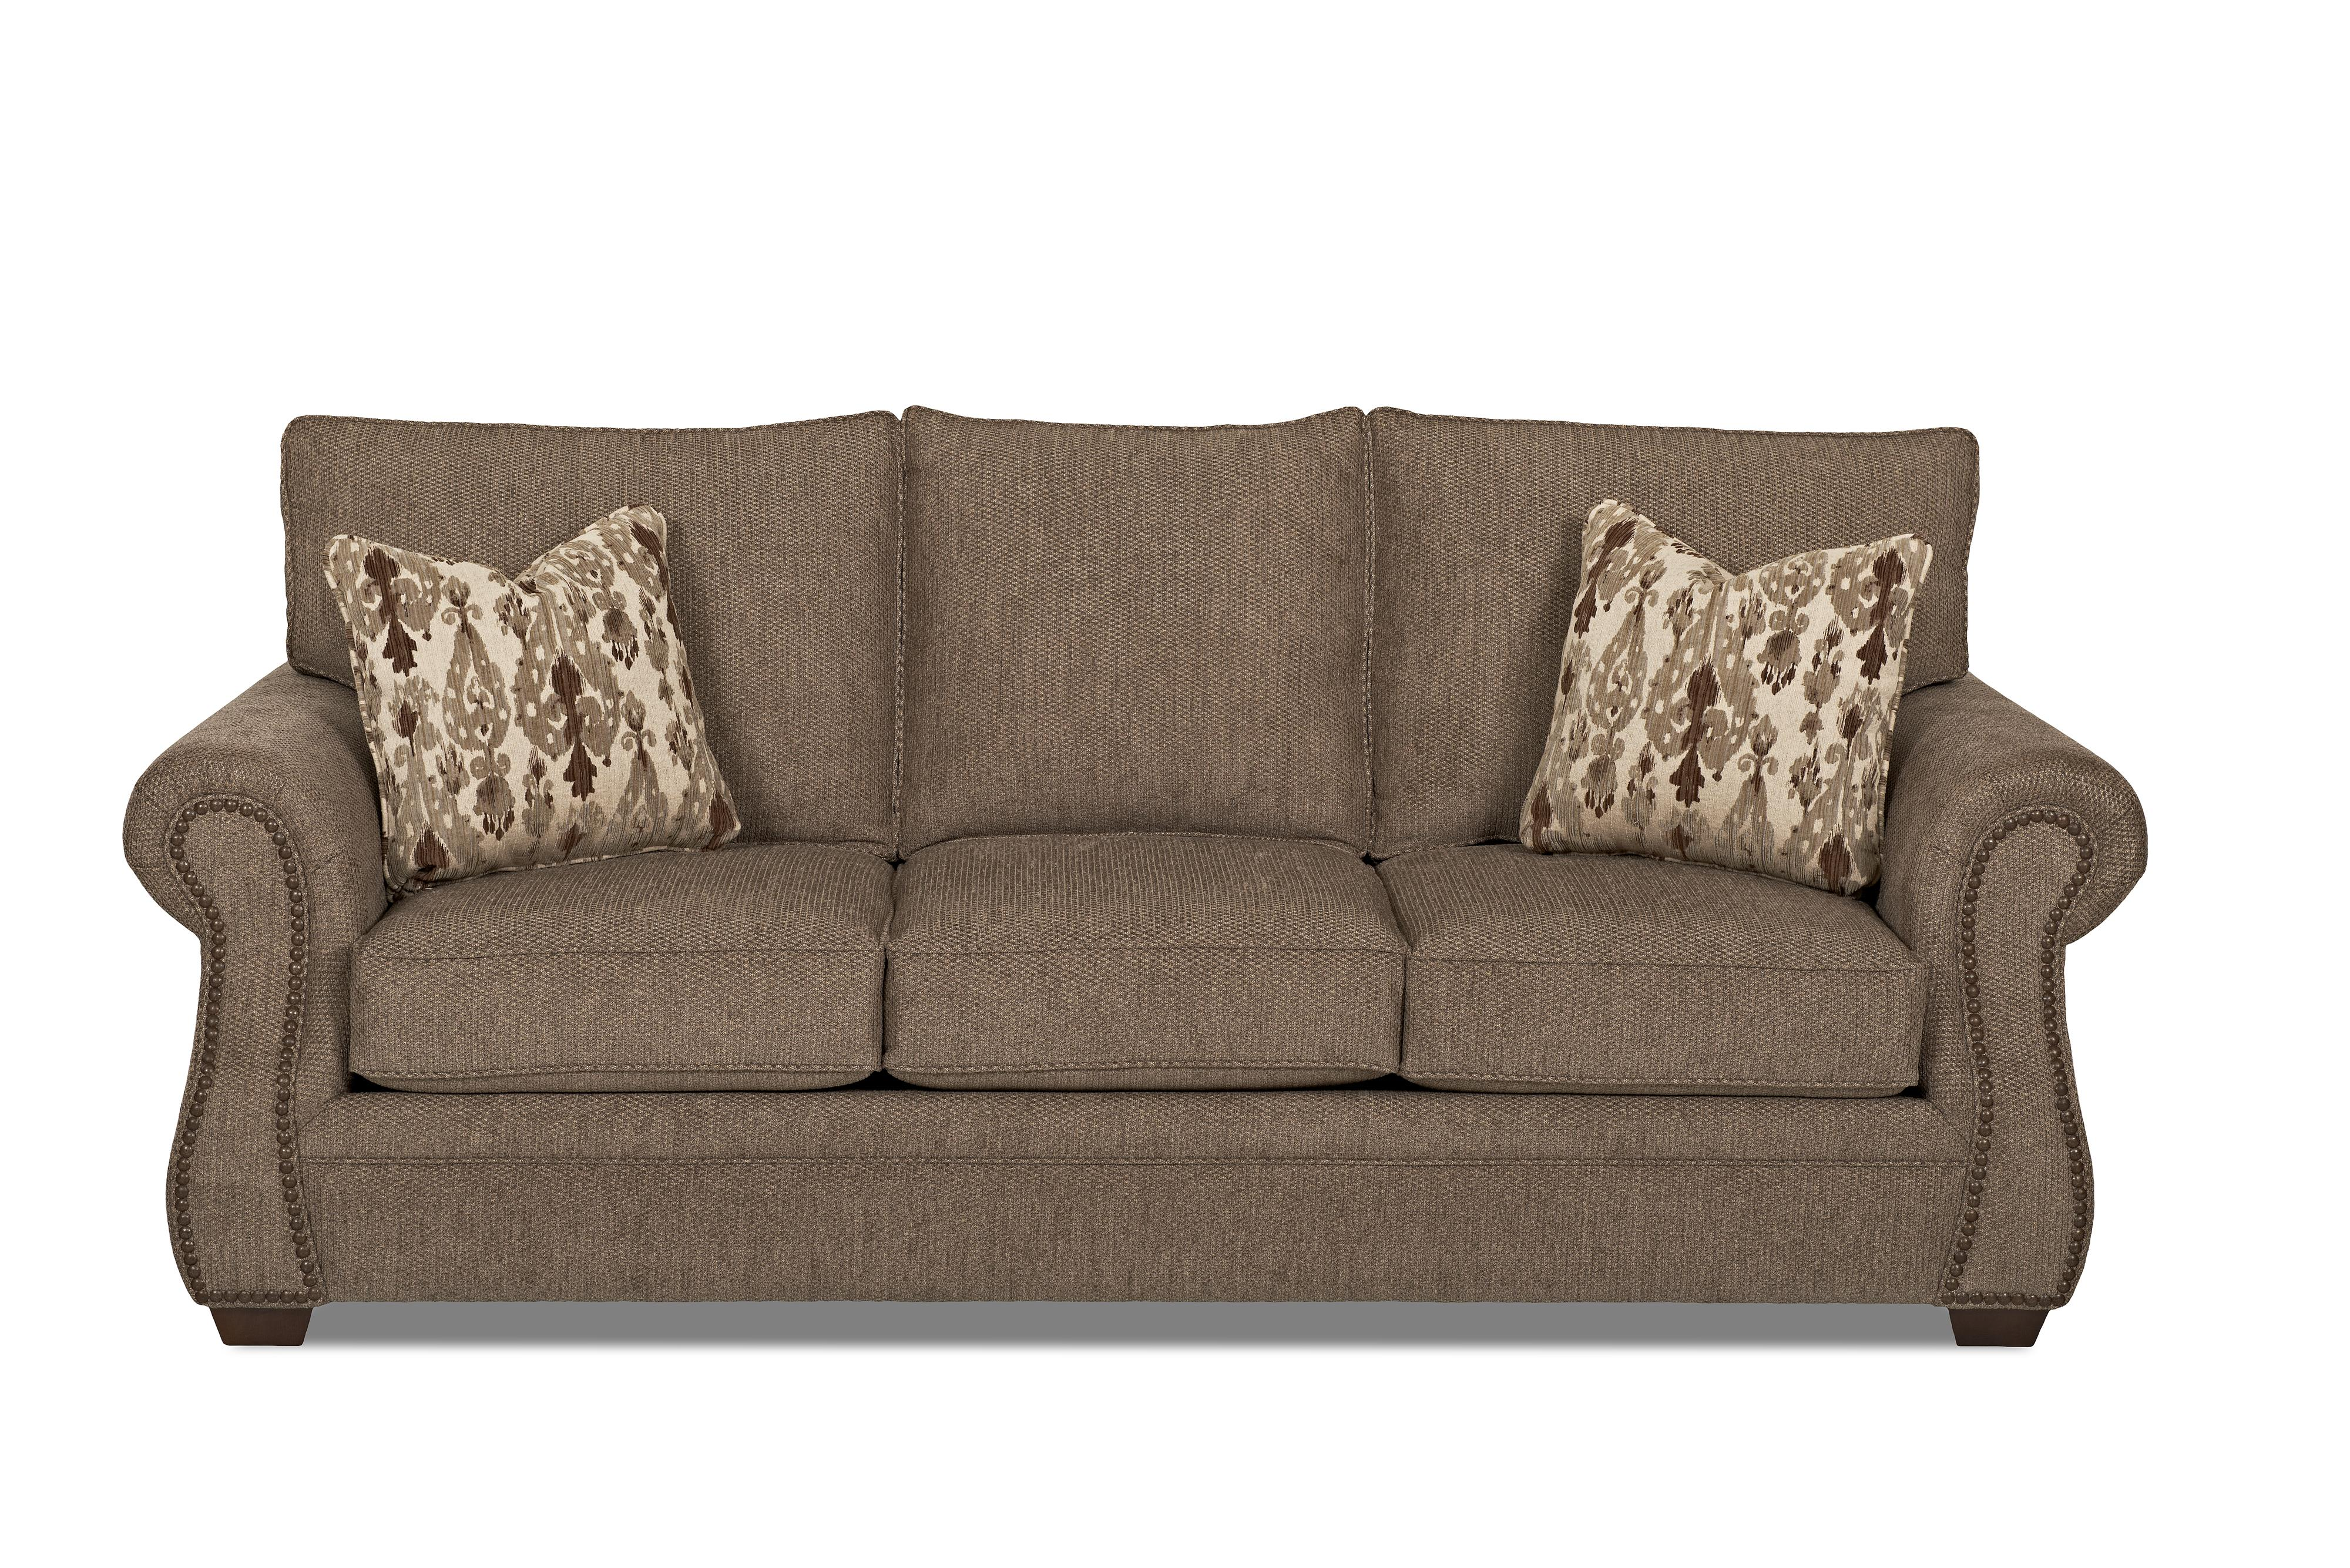 Klaussner jasper traditional sofa with nailhead trim for Traditional sectional